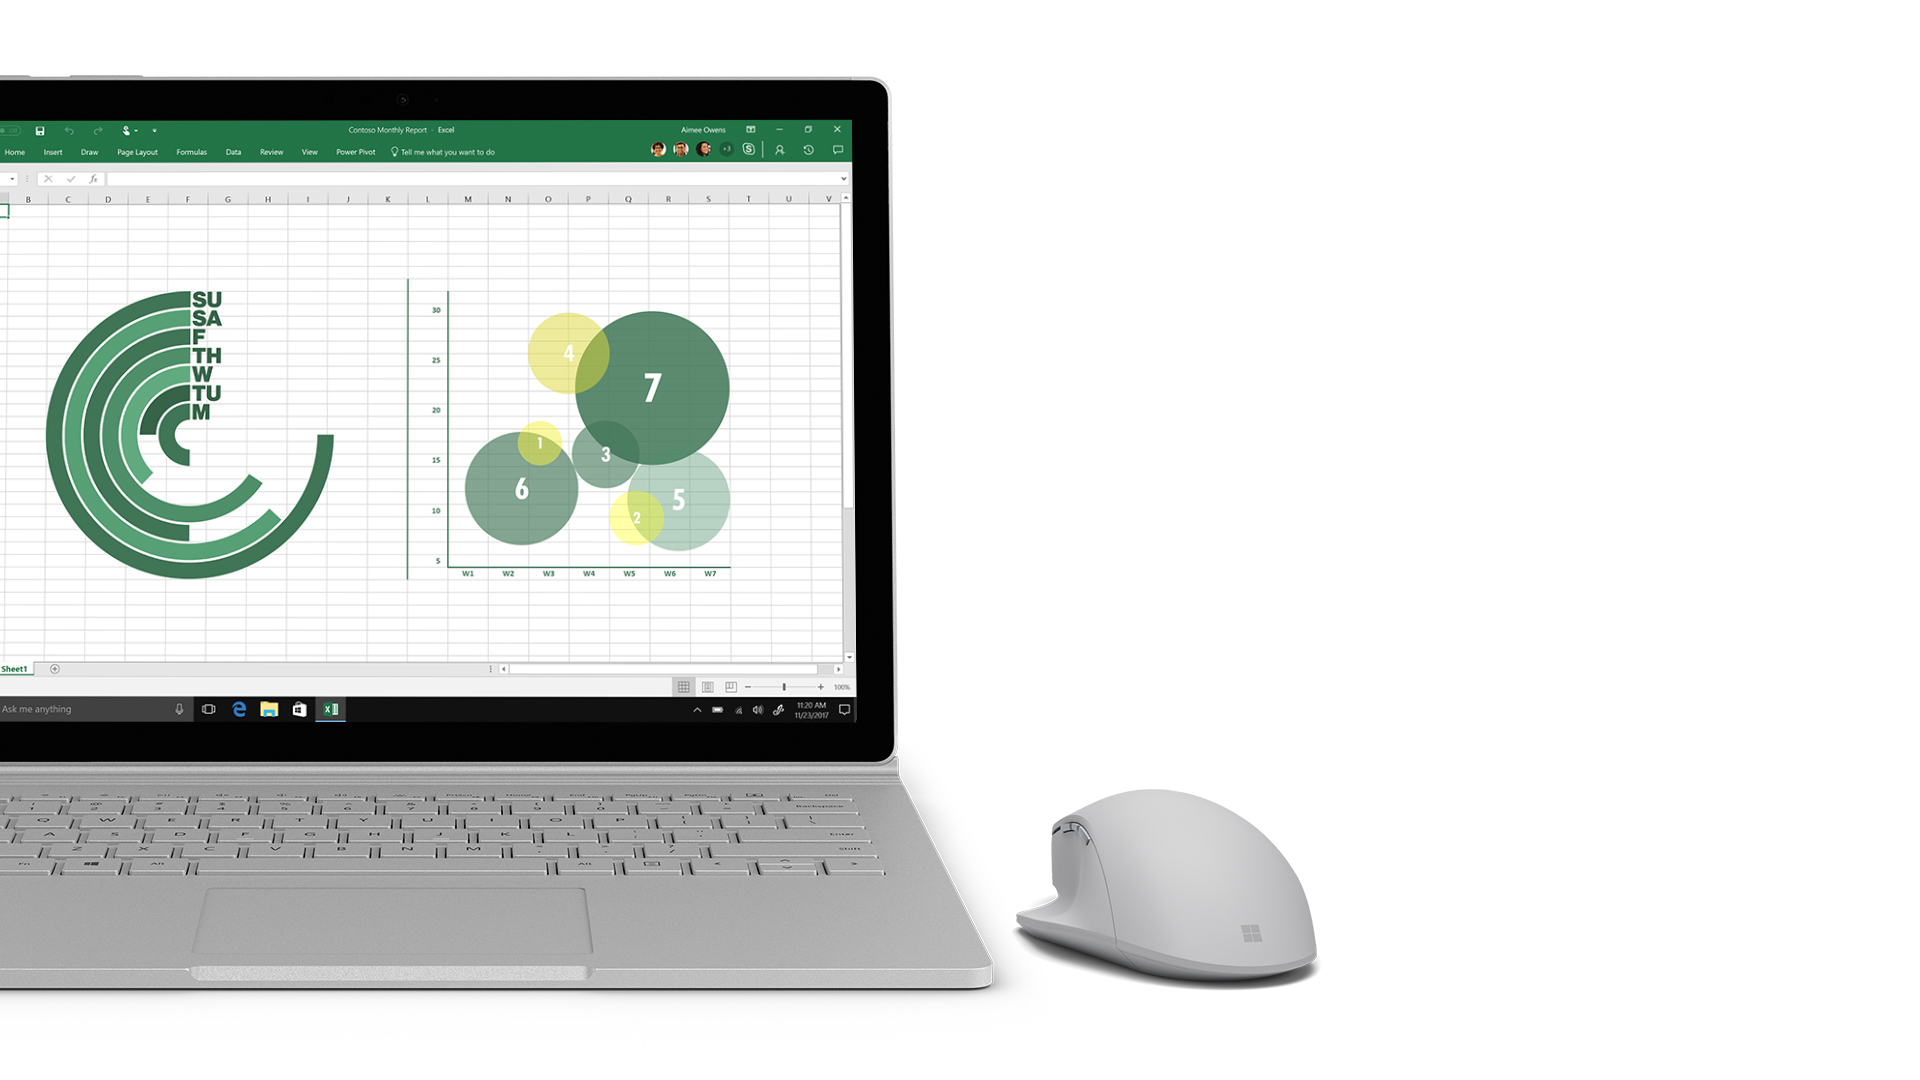 Surface 上的 Excel 螢幕擷取畫面。